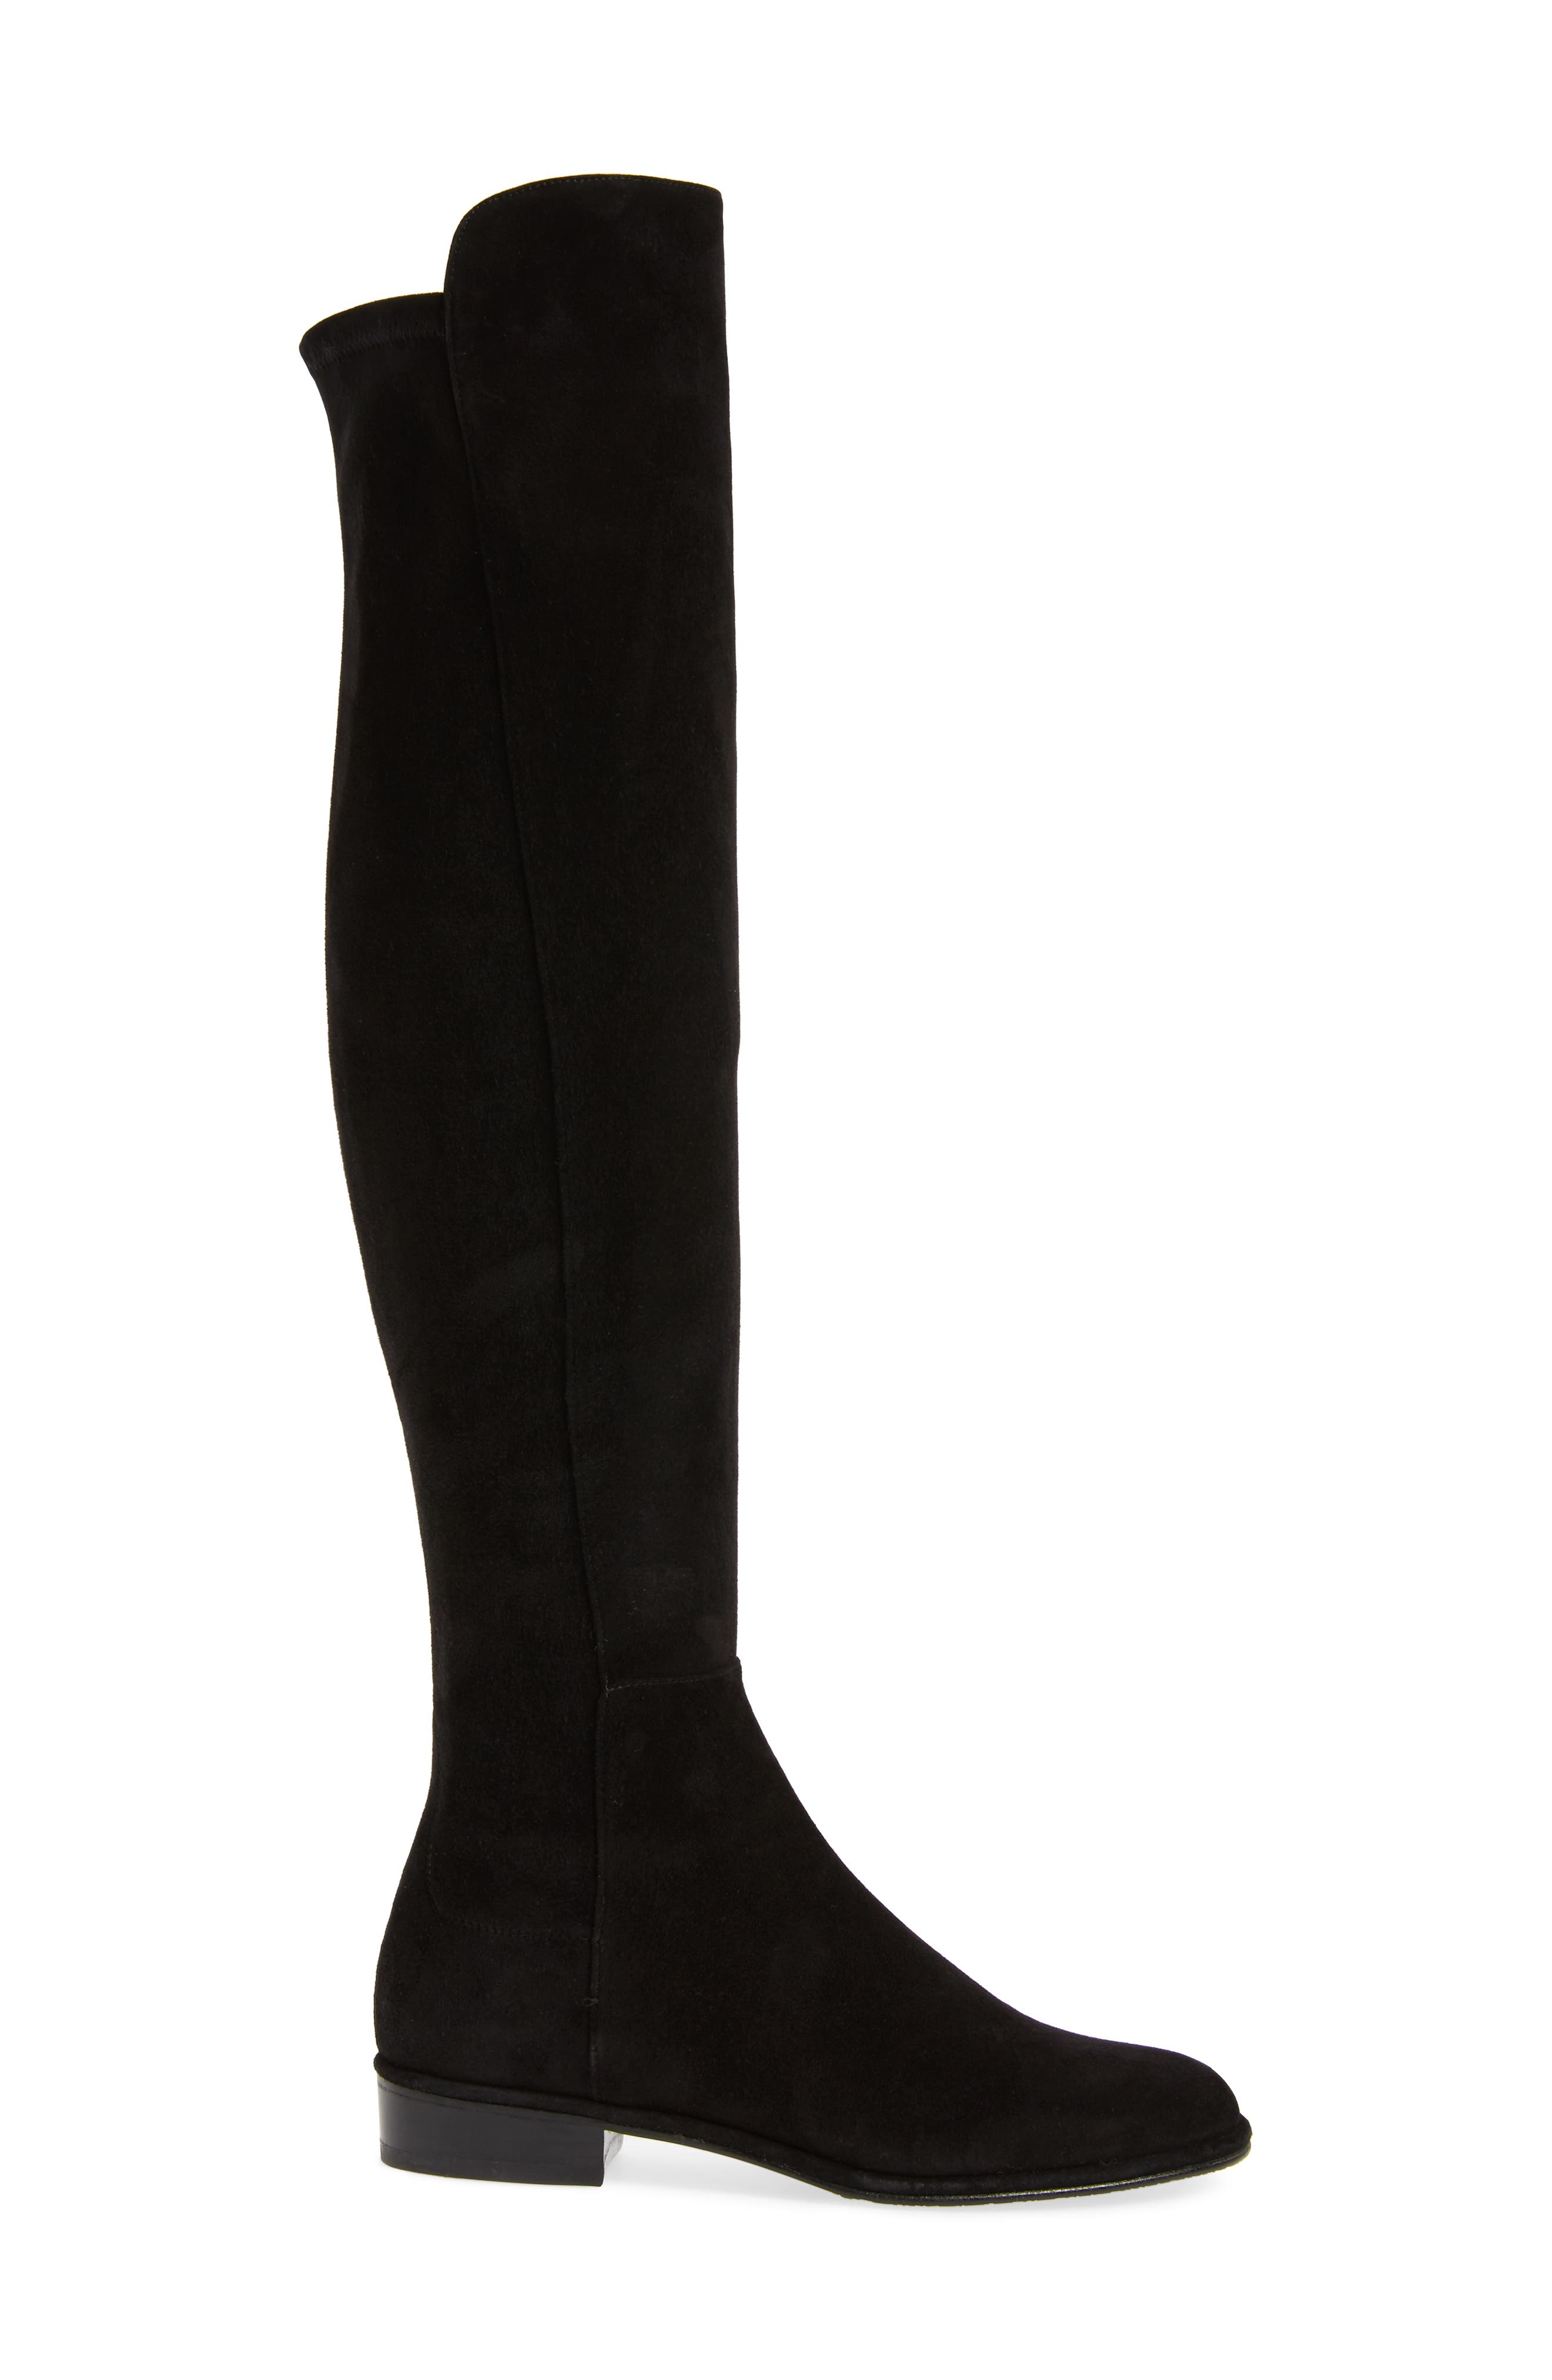 Allgood Over the Knee Boot,                             Alternate thumbnail 3, color,                             001